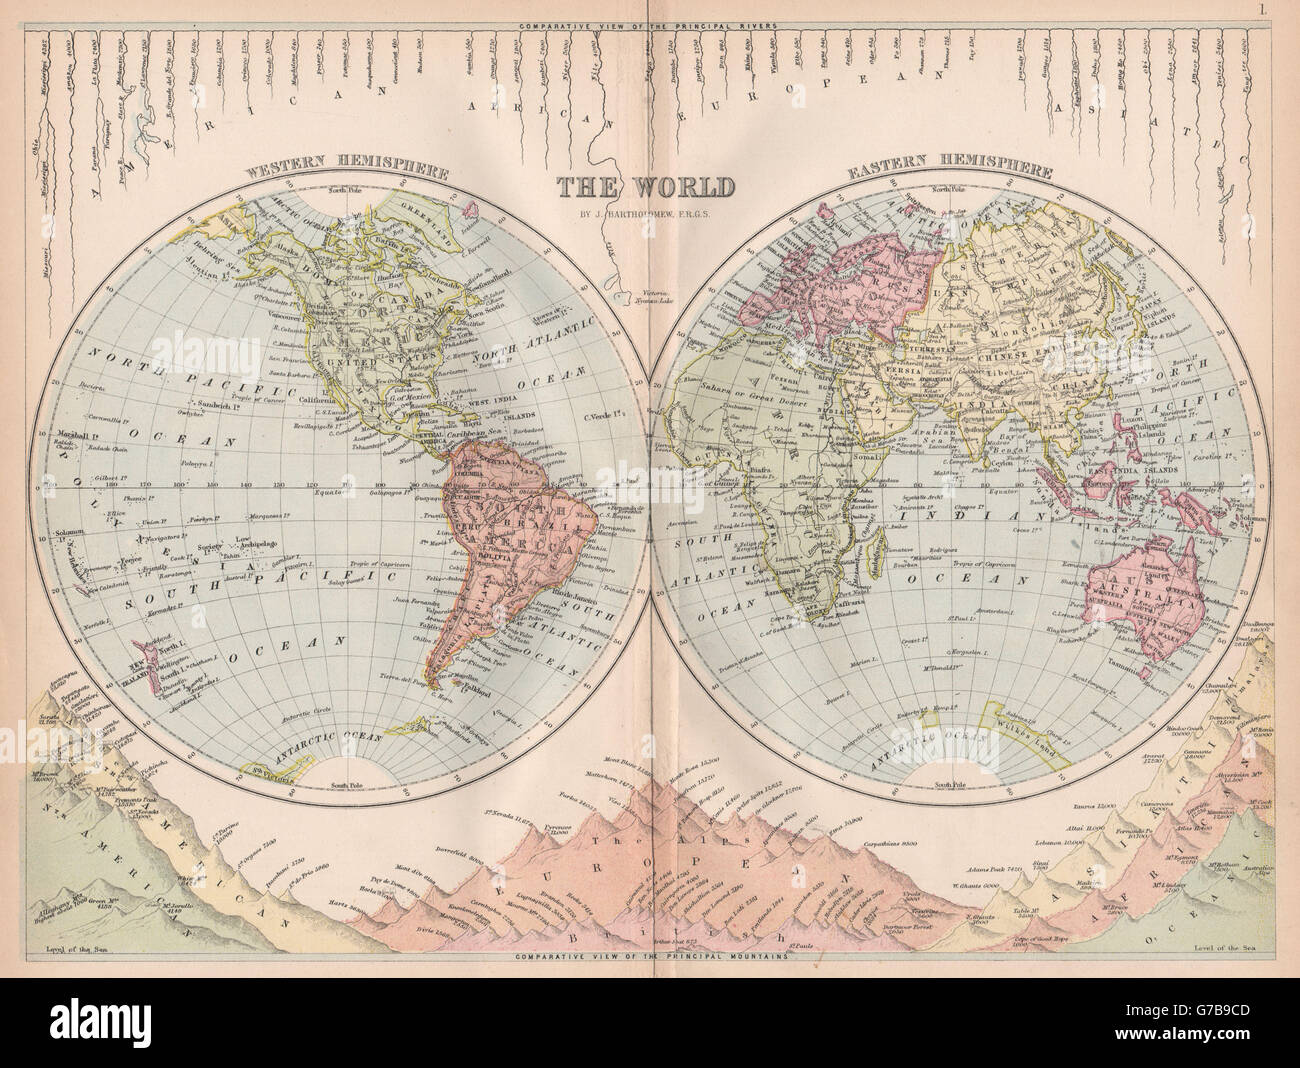 THE WORLD IN HEMISPHERES. River lengths Mountain heights. BARTHOLOMEW, 1878 map - Stock Image